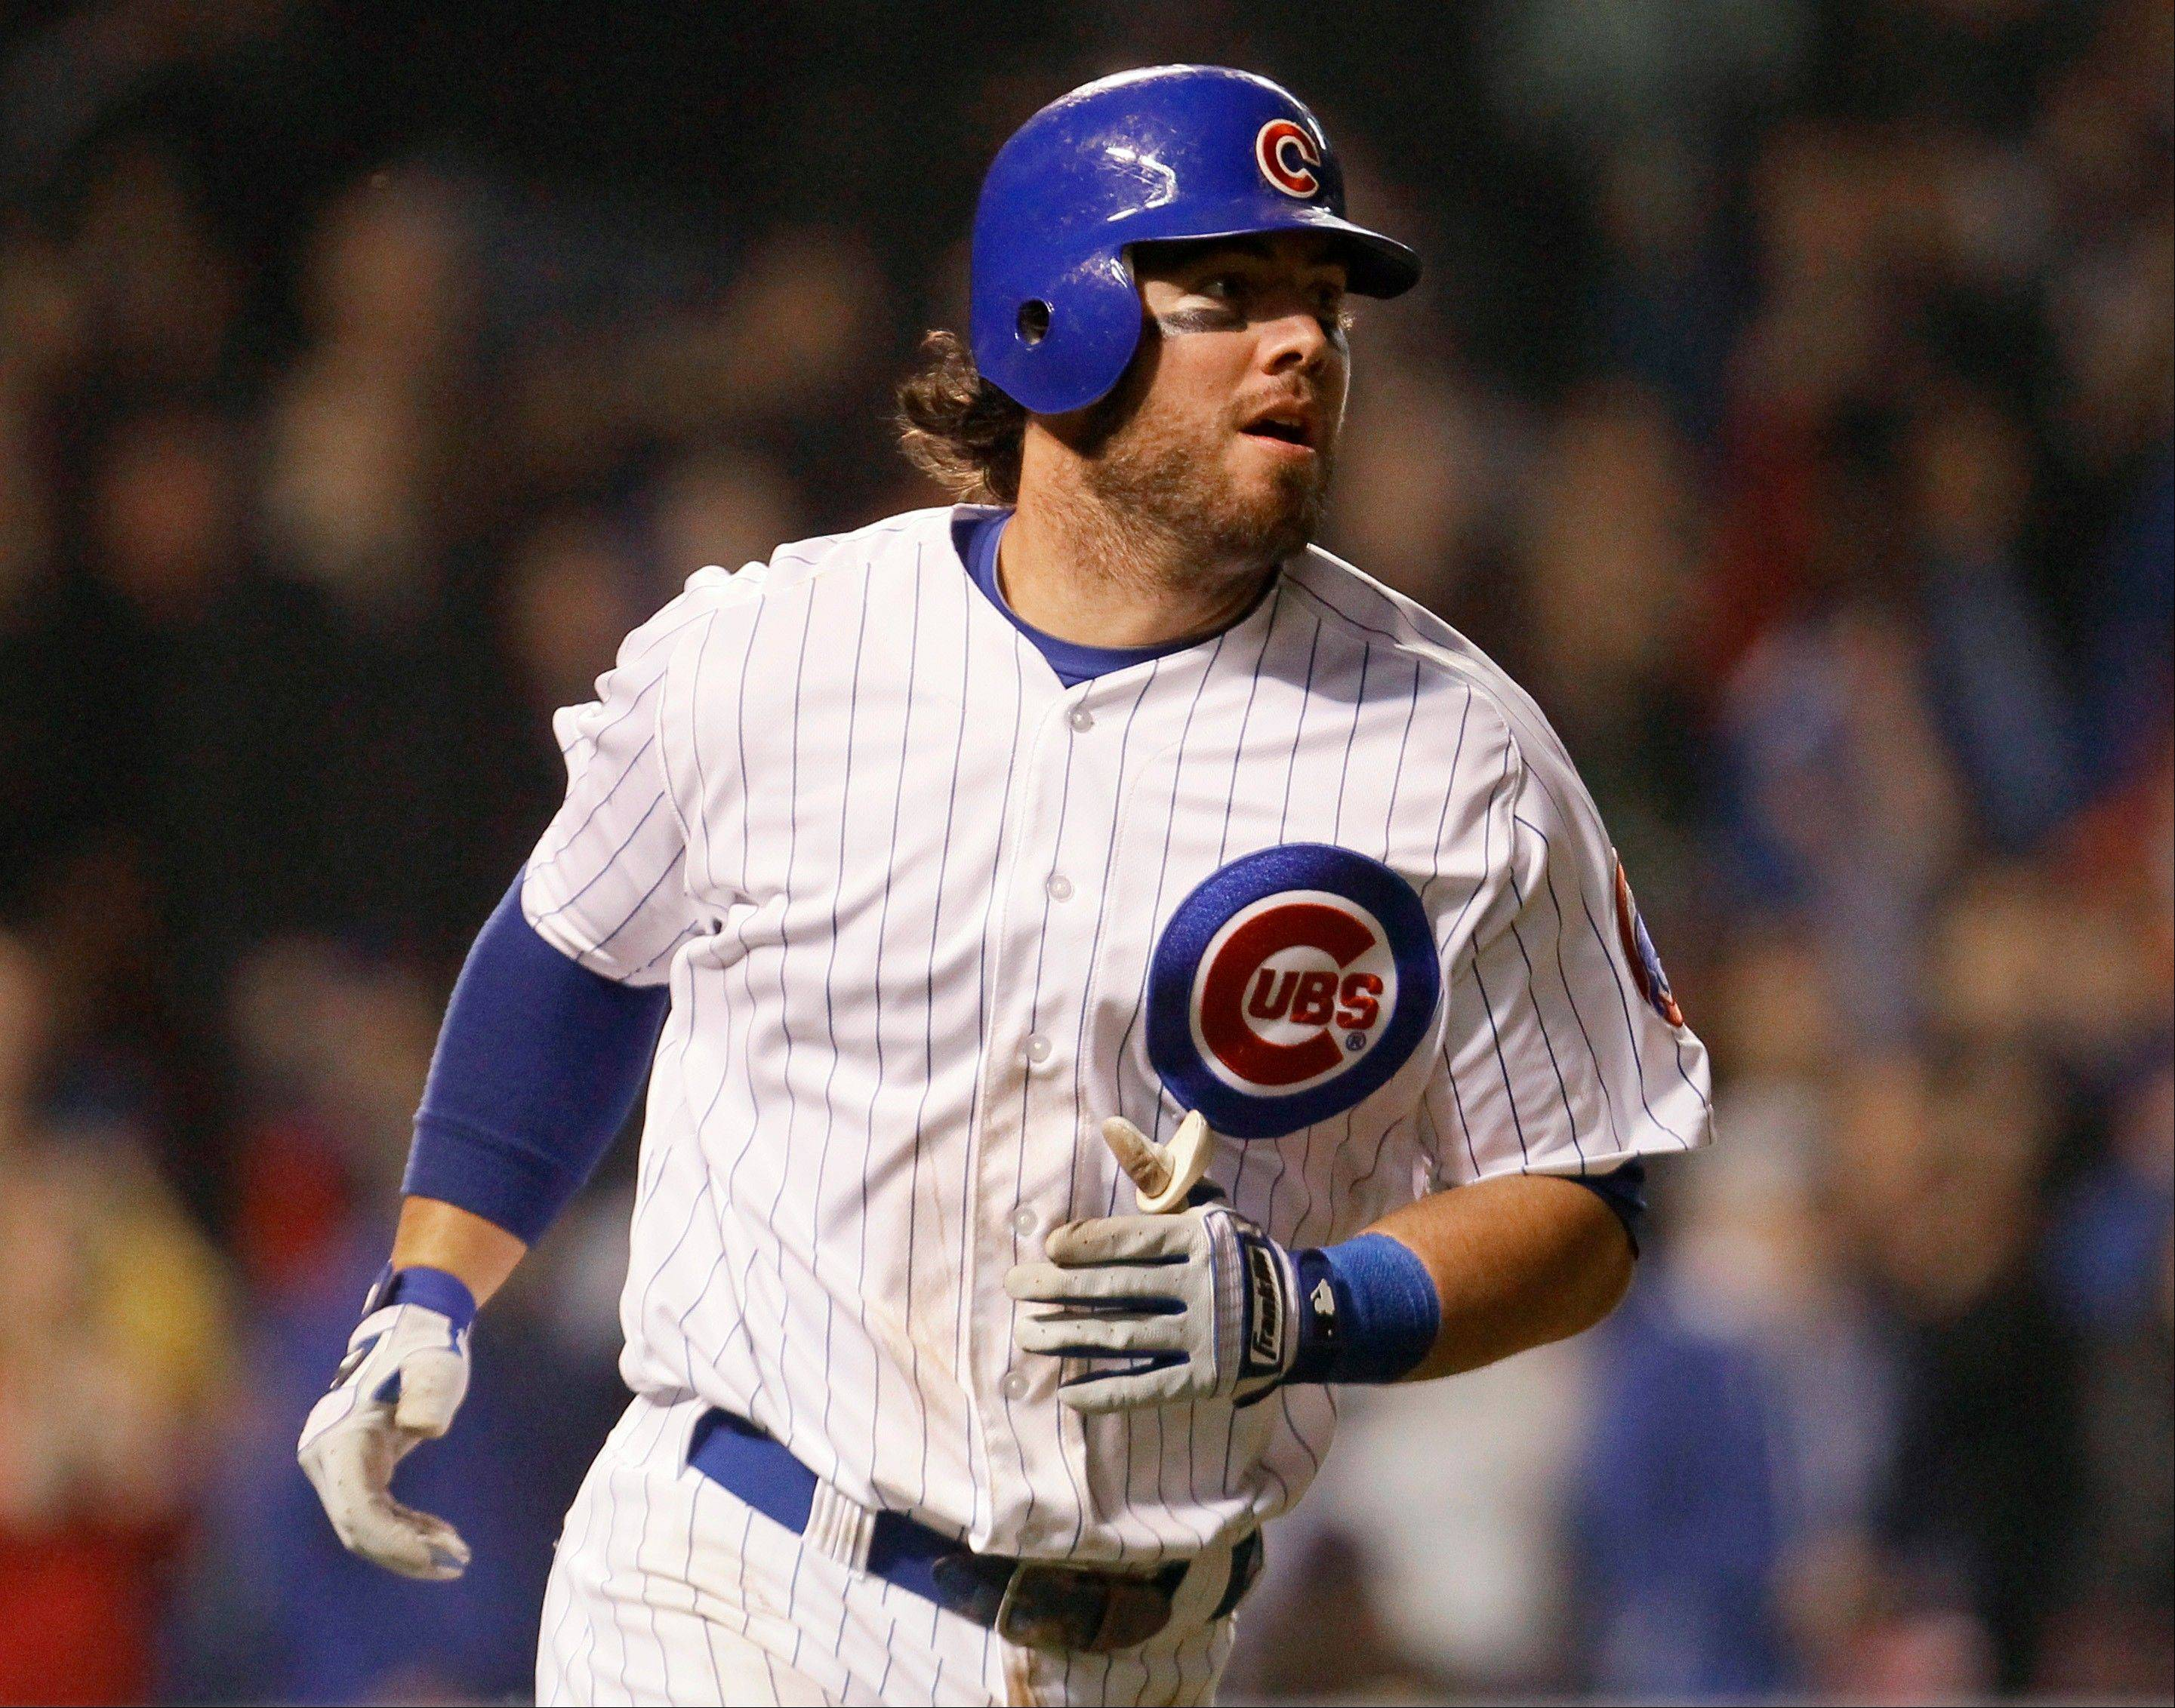 Ian Stewart his 5 home runs in 55 games last season for the Cubs before having surgery on his left wrist. Stewart and Cubs officials agreed to a one-year deal on Monday.